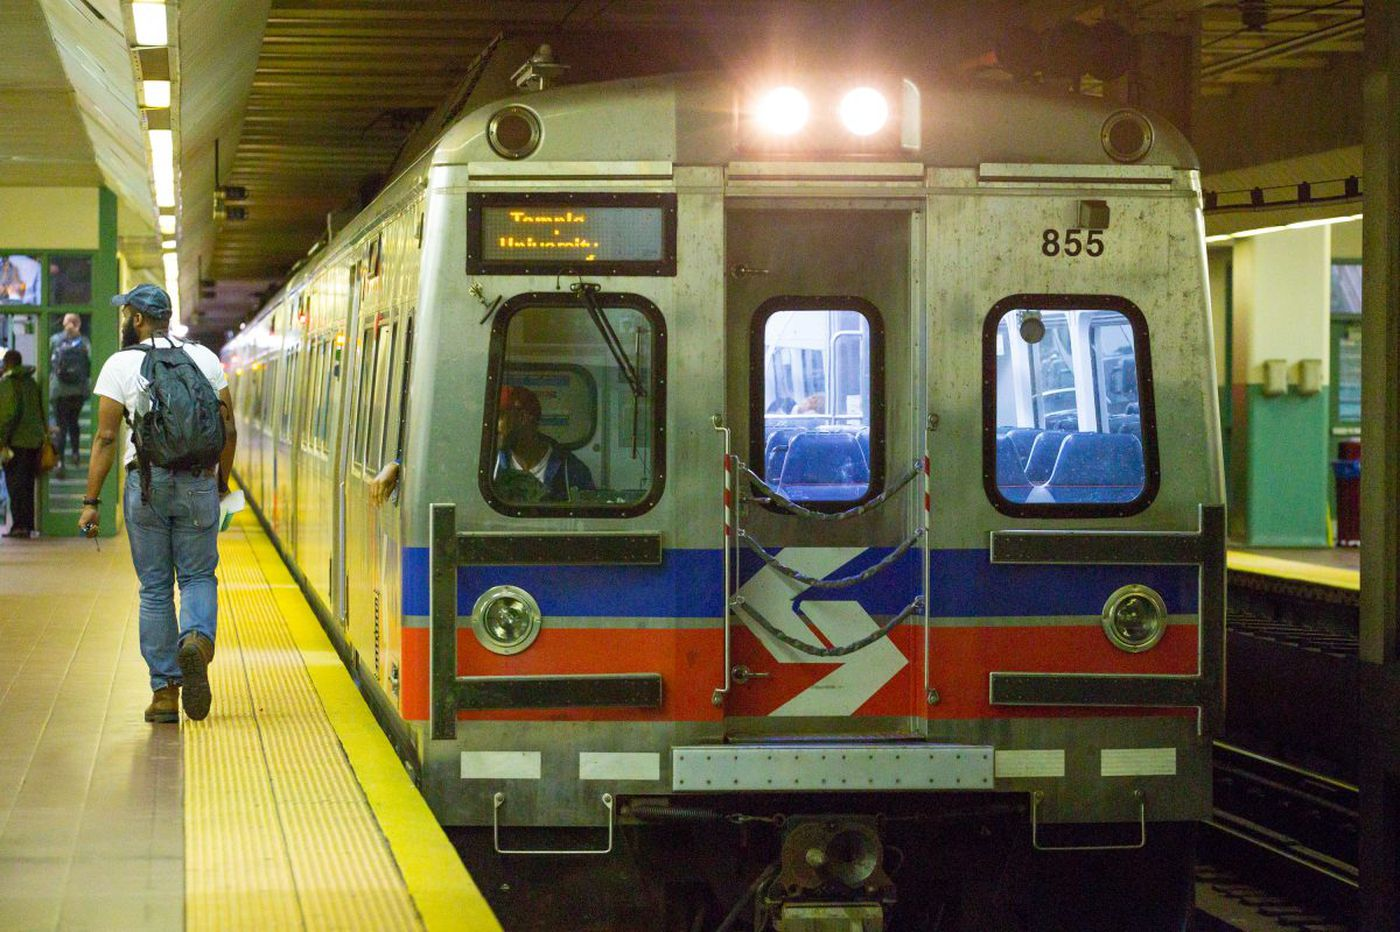 Are We There Yet? Read our 5-day series on SEPTA